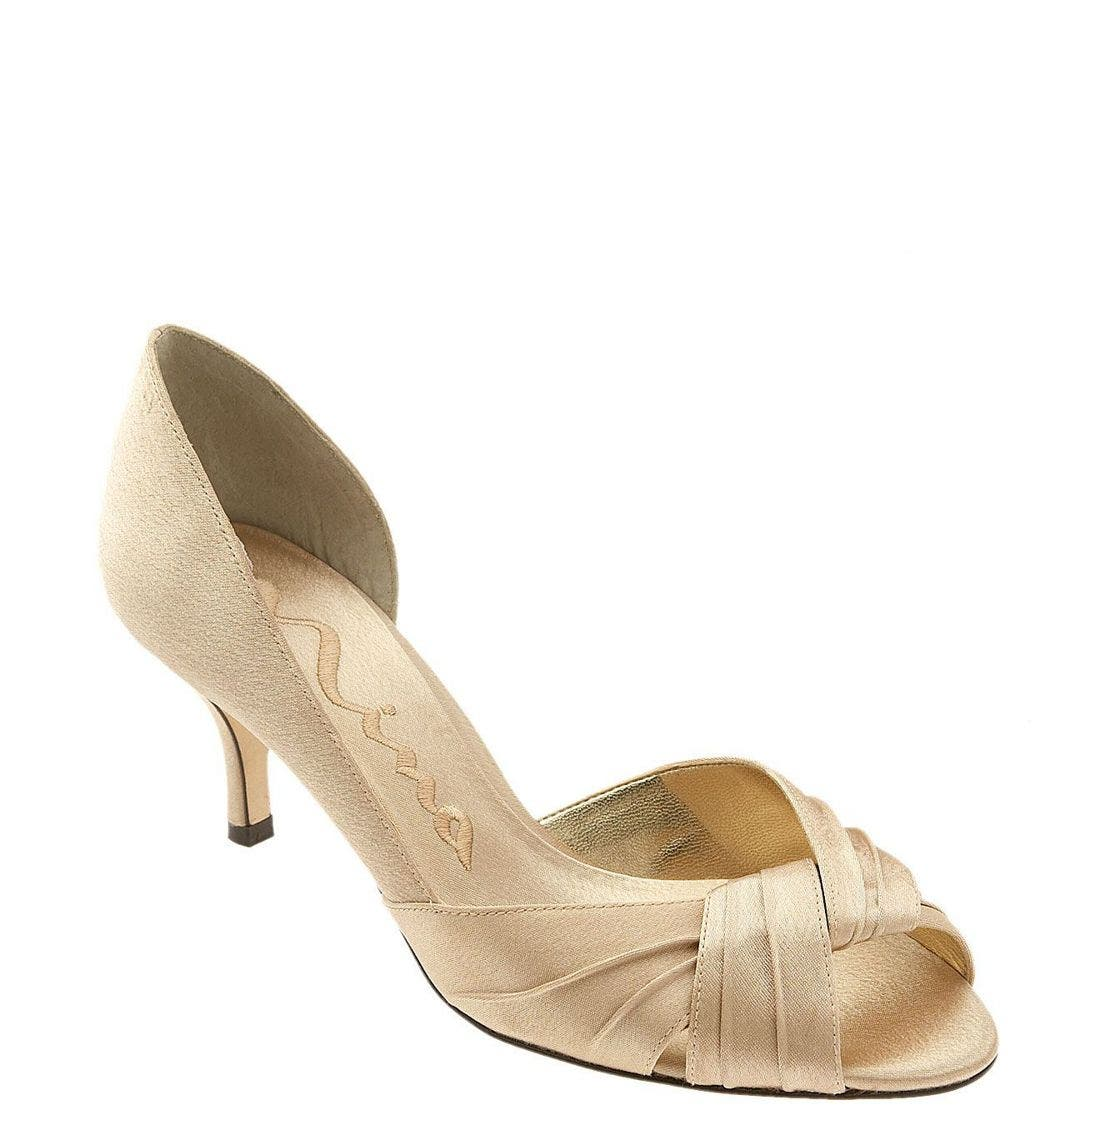 Nina 'Culver' d'Orsay Pump (Women)